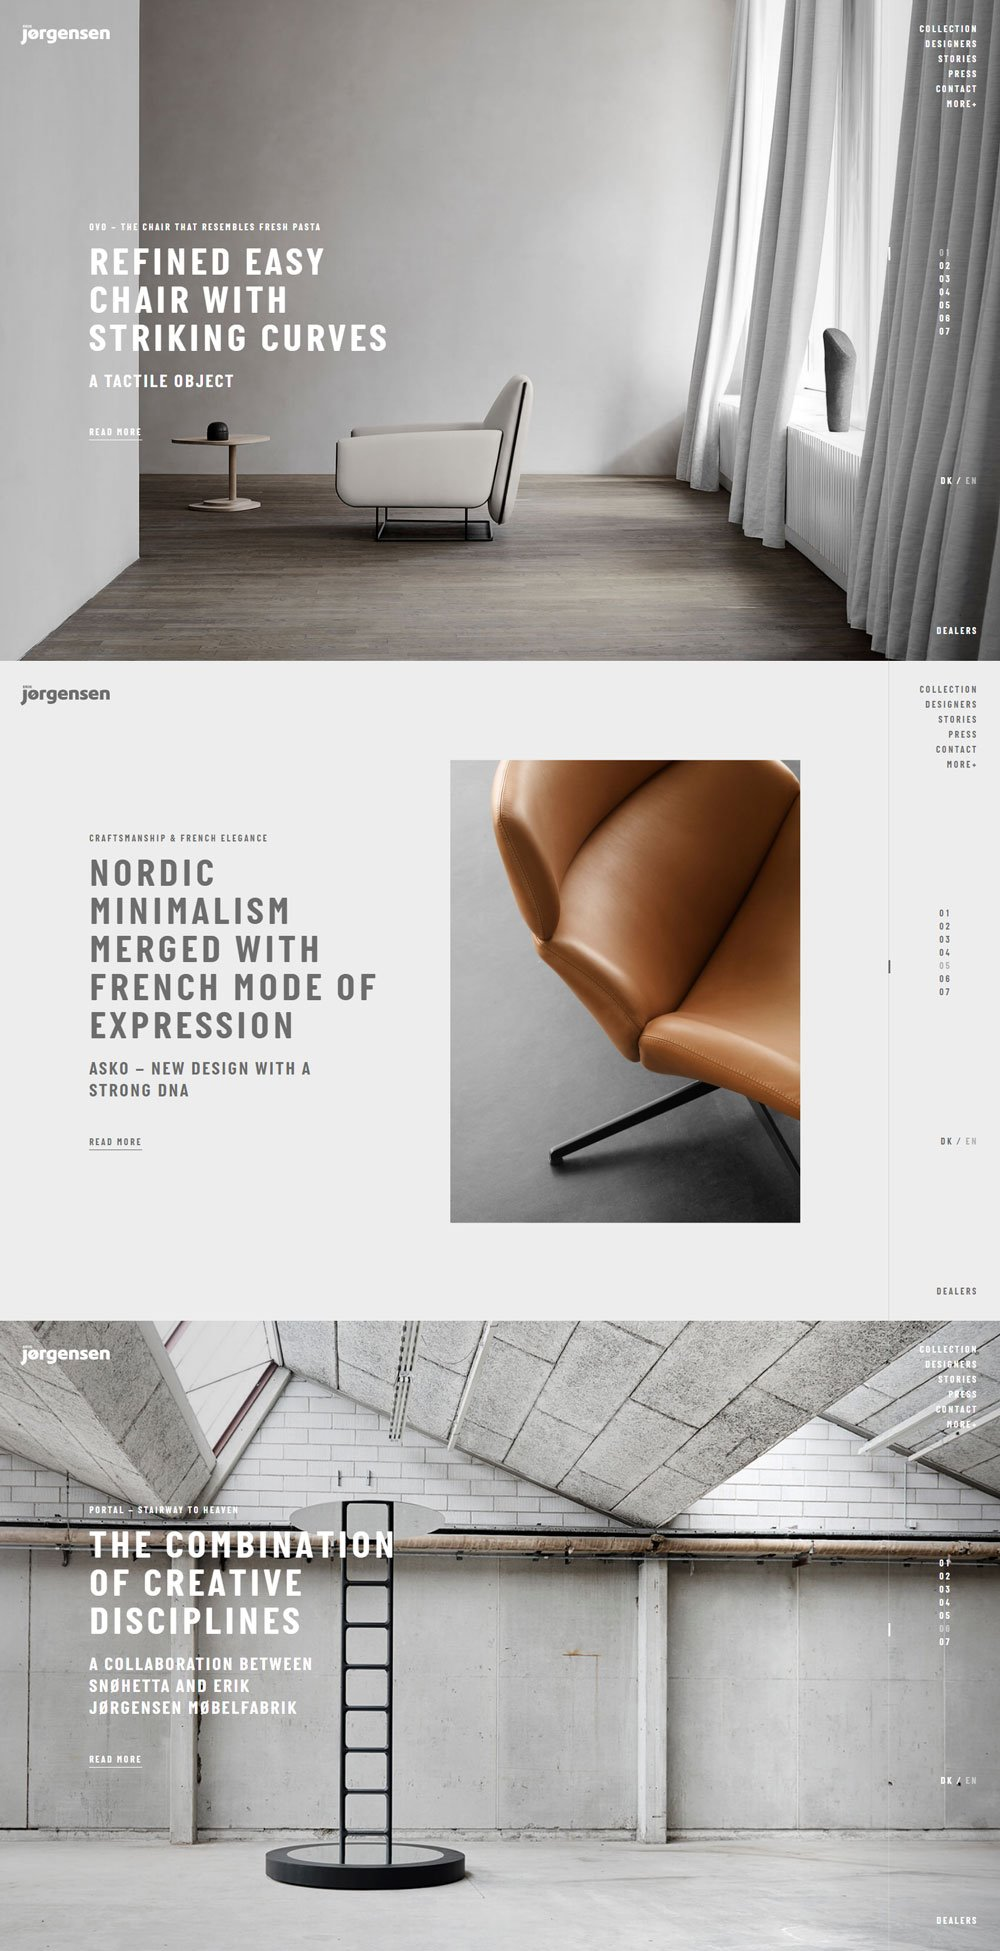 Best-WordPress-Themes-and-Web-Design-for-Creatives-009